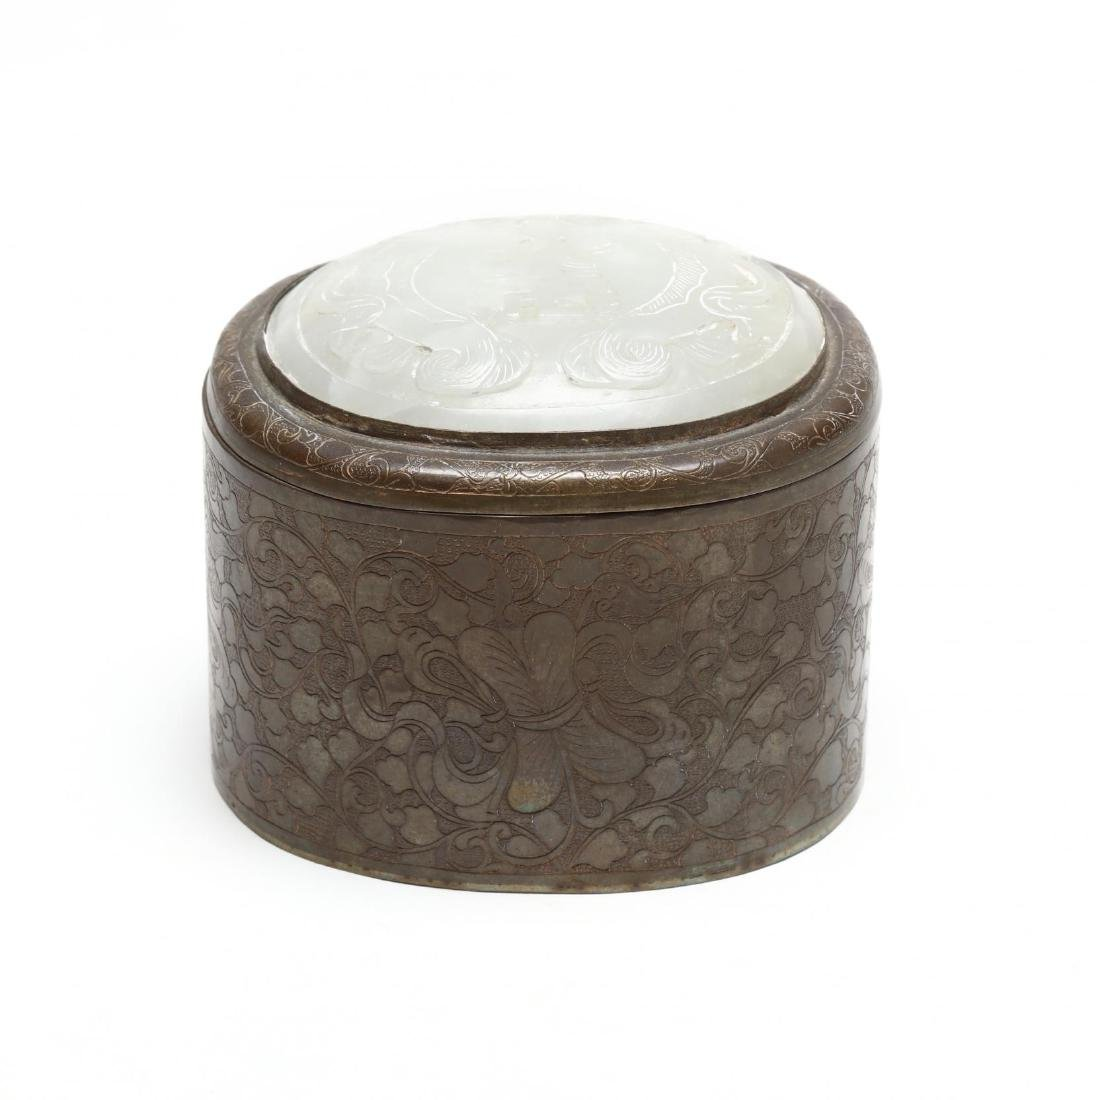 A Chinese Carved Jade Inlaid Covered Metal Box